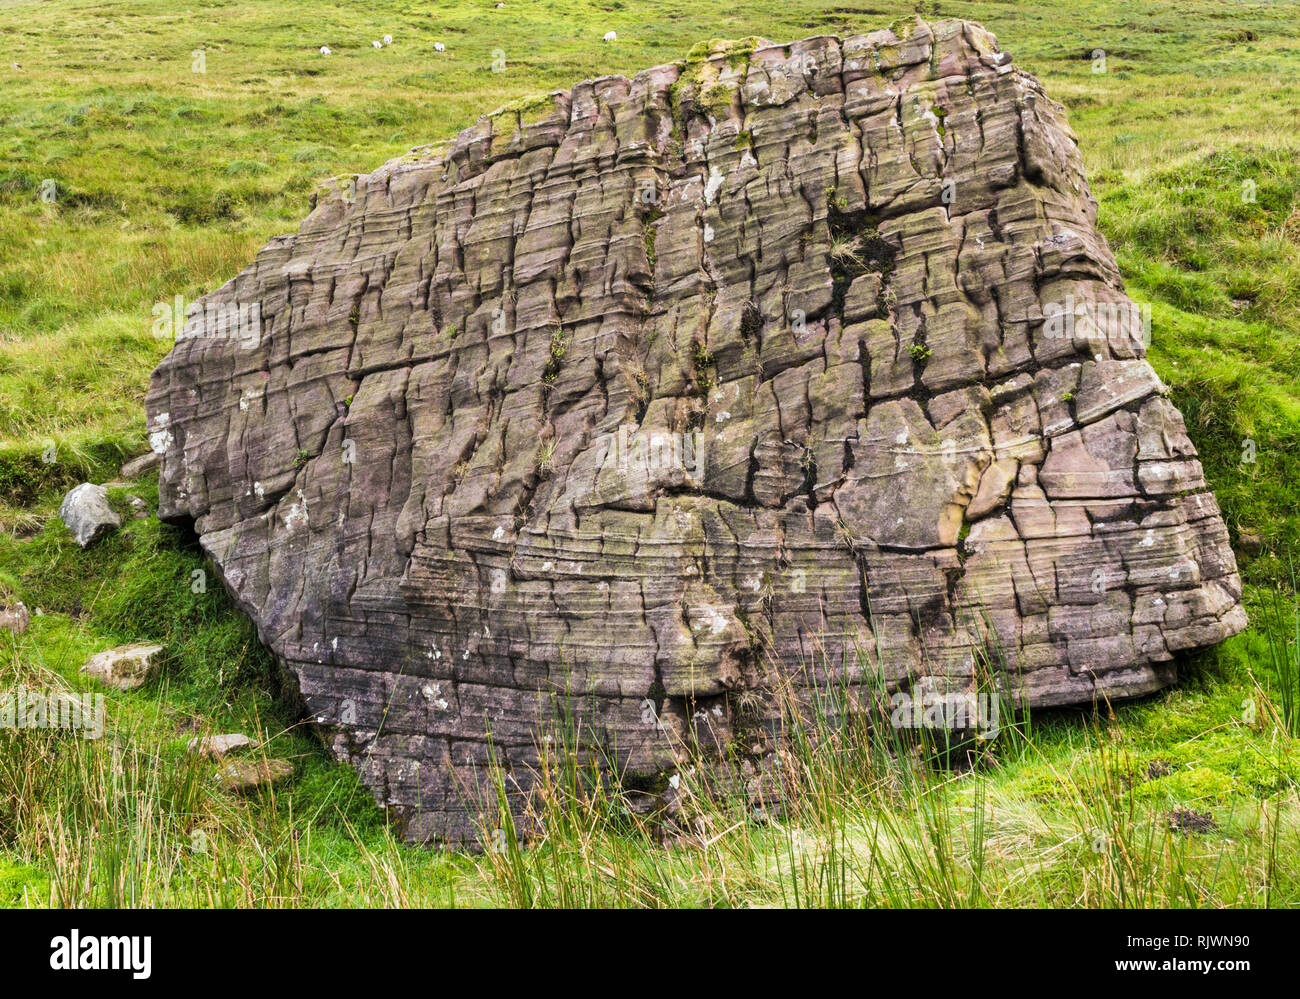 Large boulder of cross bedded red sandstone of Devonian age (Old Red Sandstone) in the Galty Mountains (Galtee Mountains), County Tipperary, Ireland - Stock Image